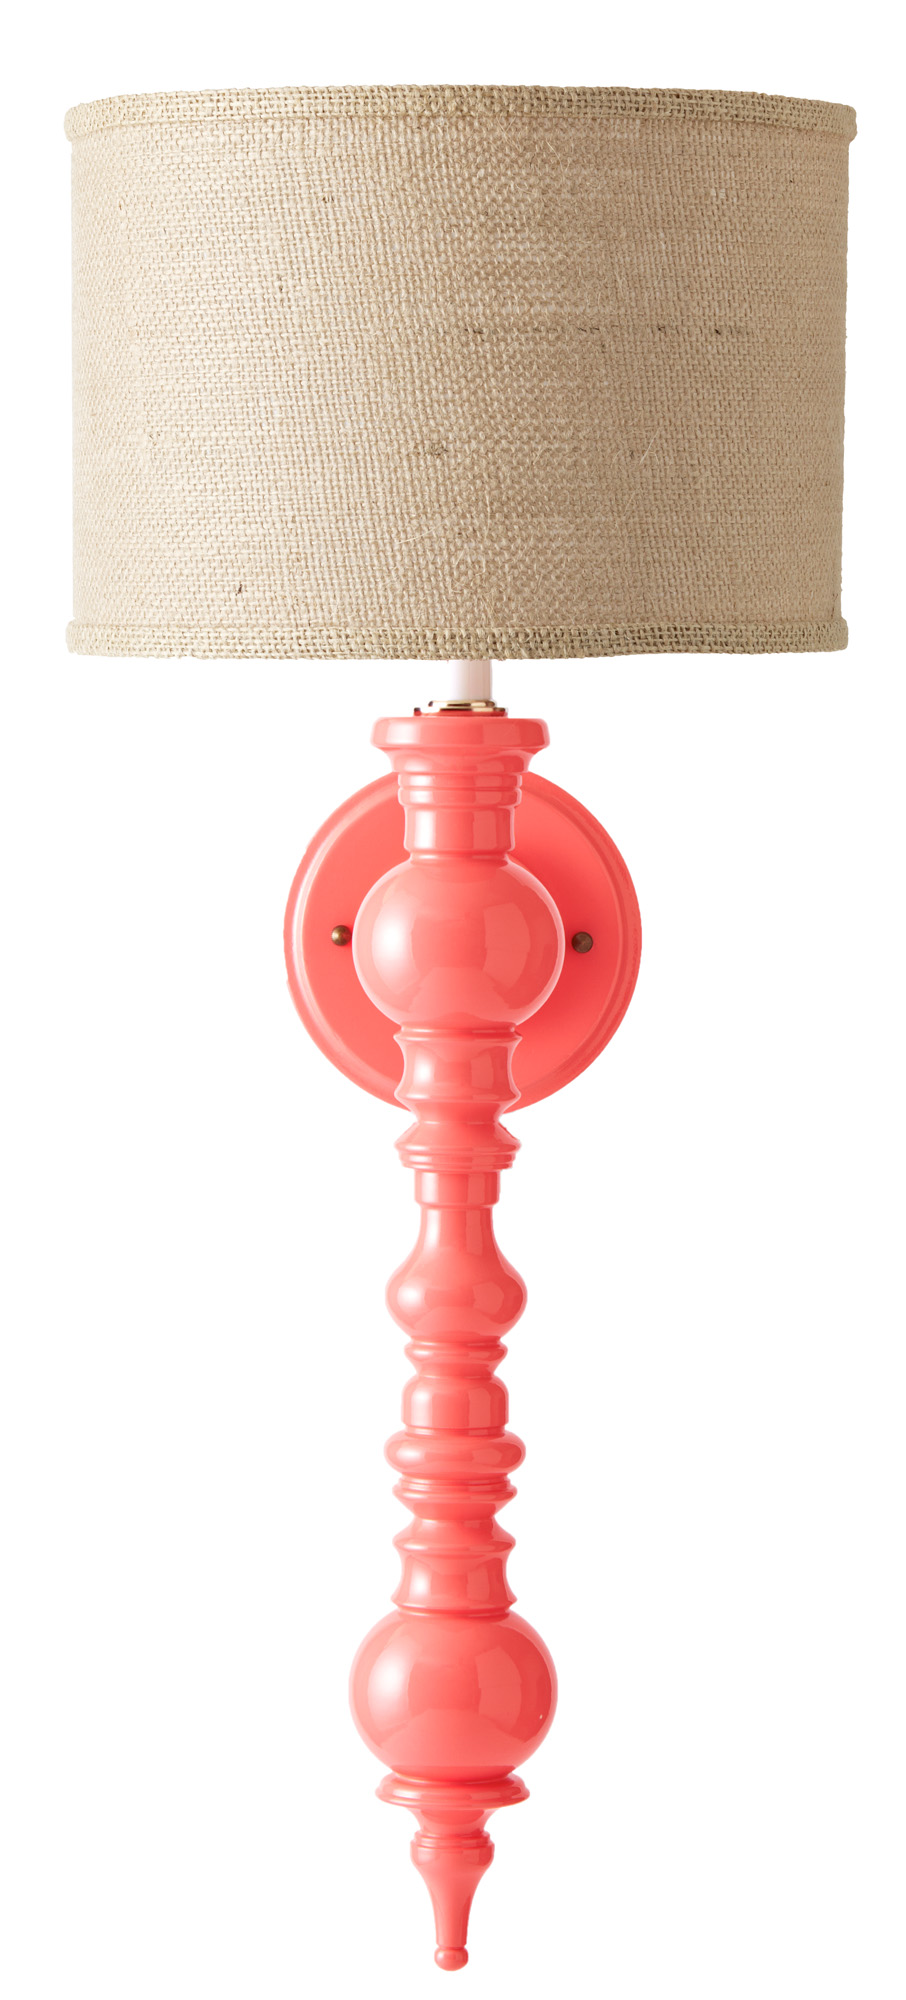 Lipstick lacquered sconce from Dune & Duchess